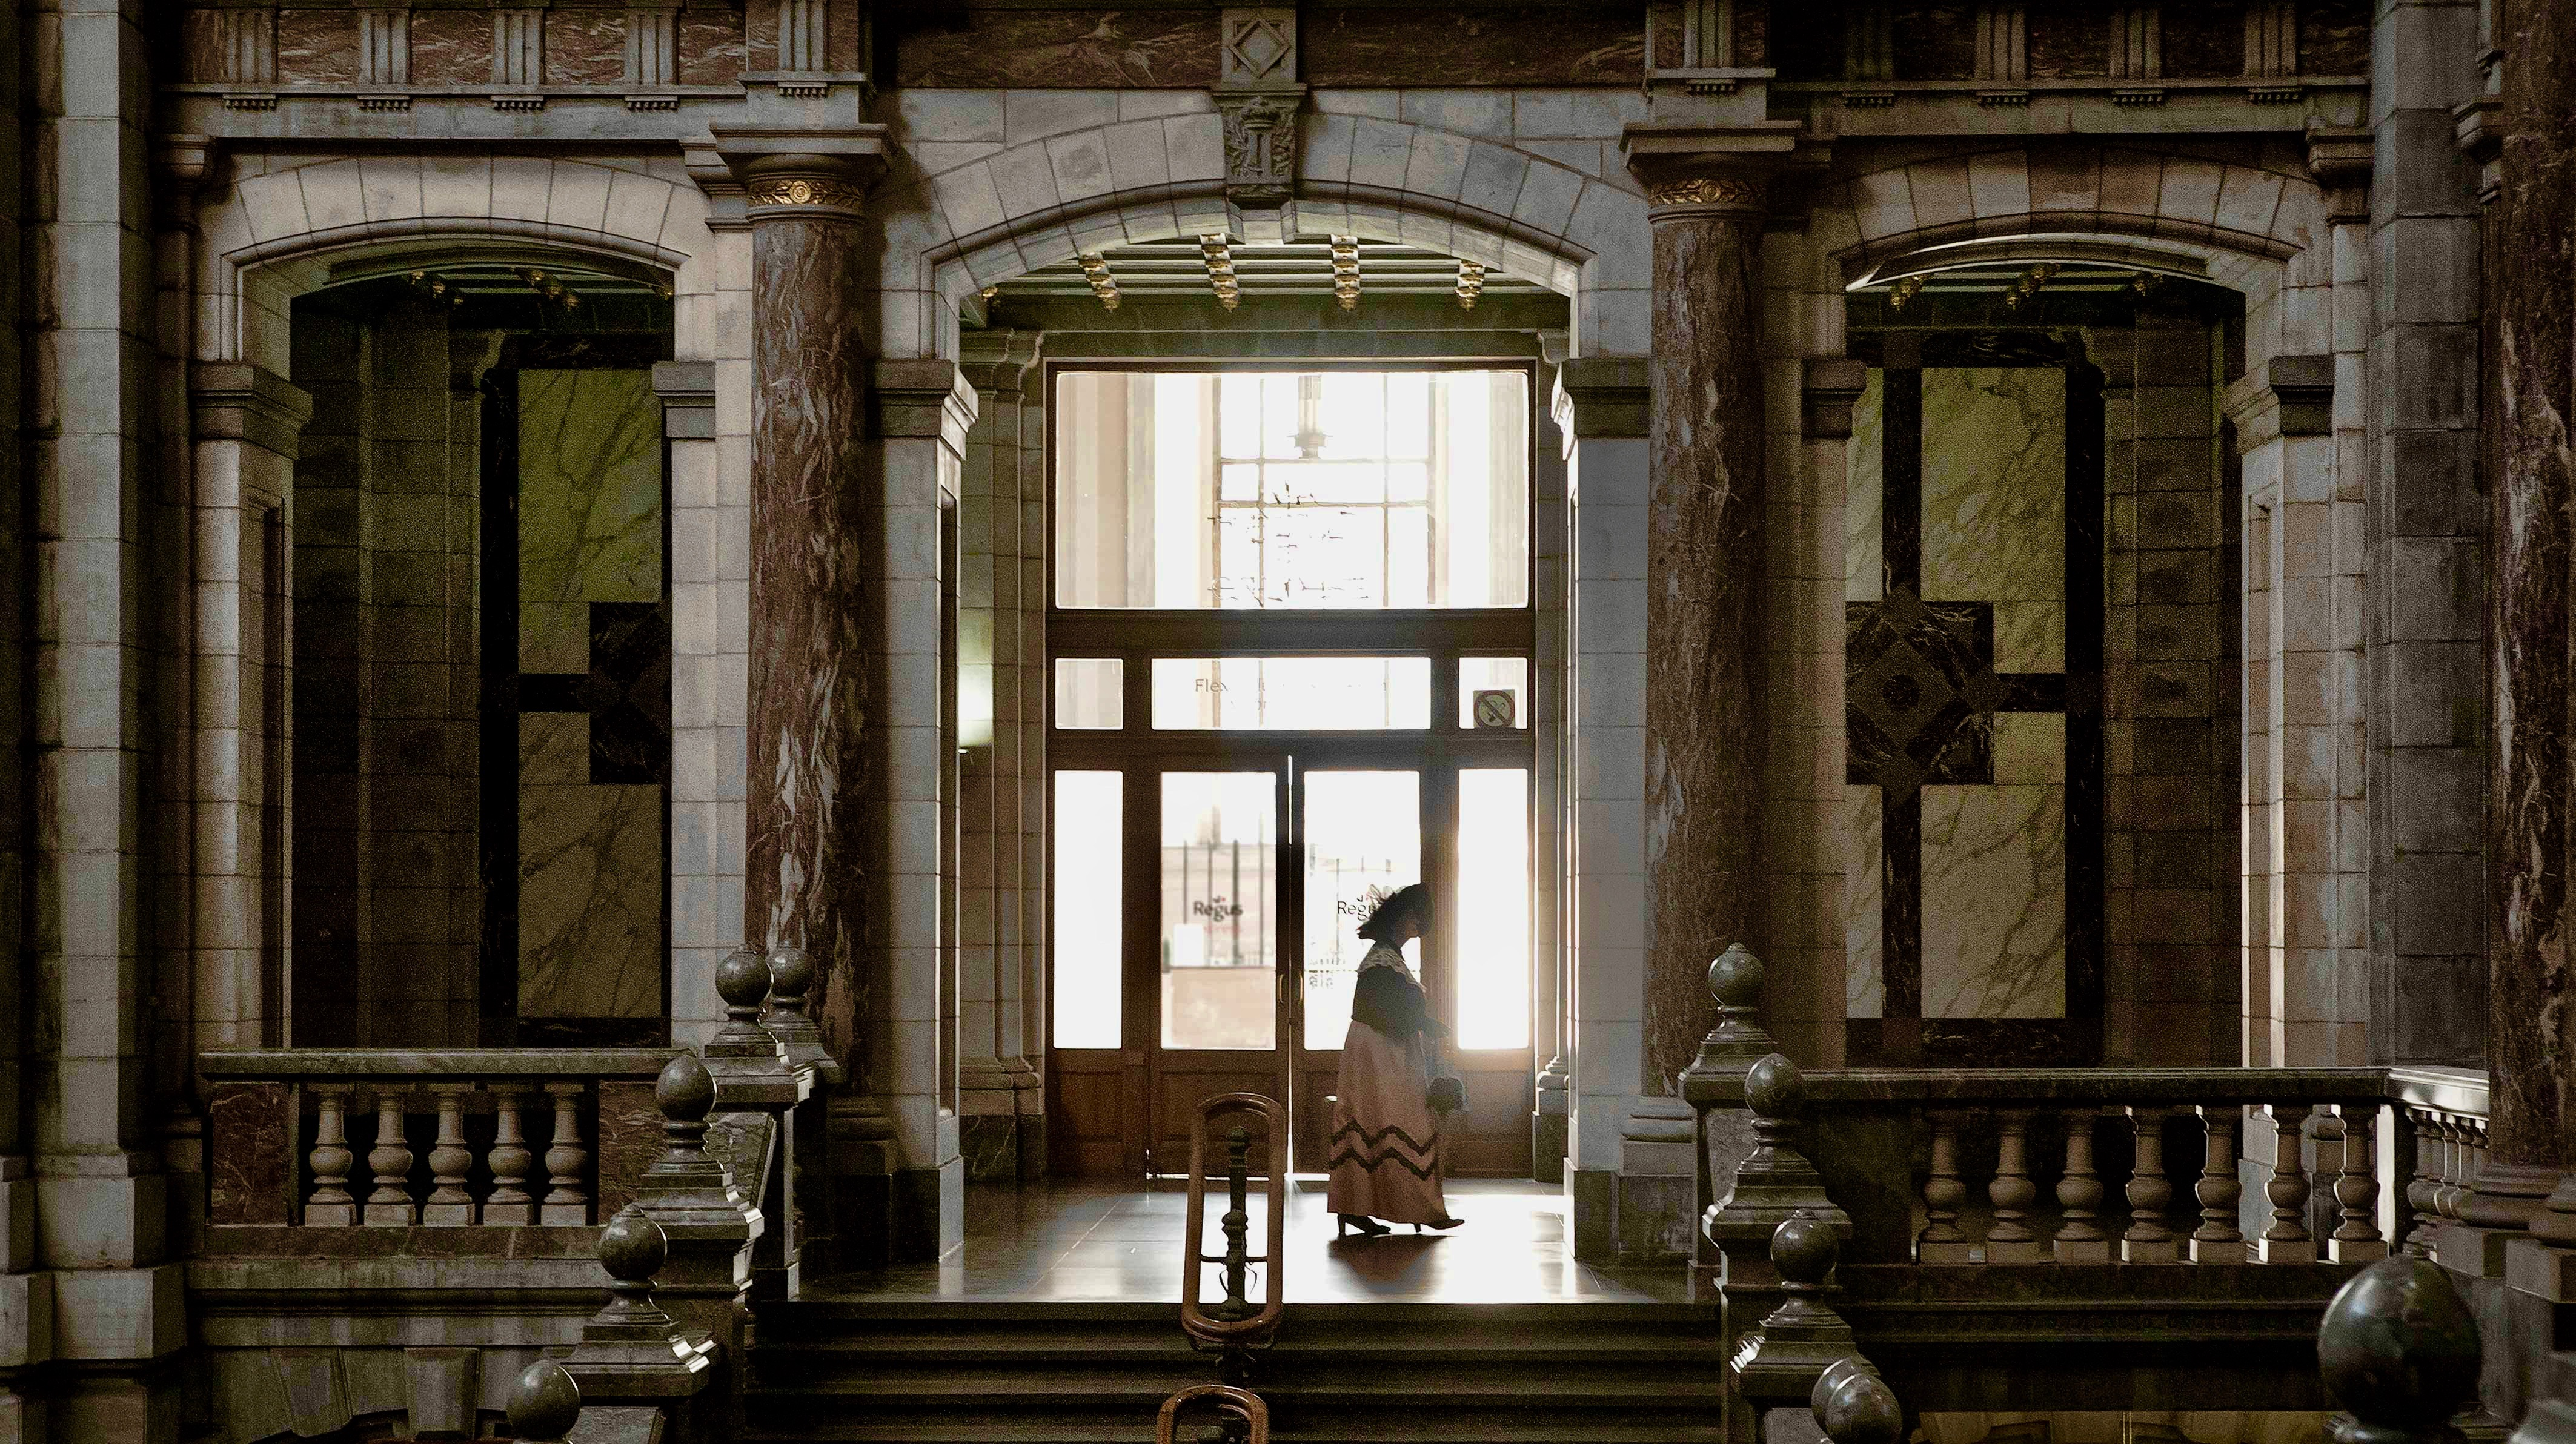 Jeremy JP Fekete / Cathedrals of steam - Europes first Railway stations